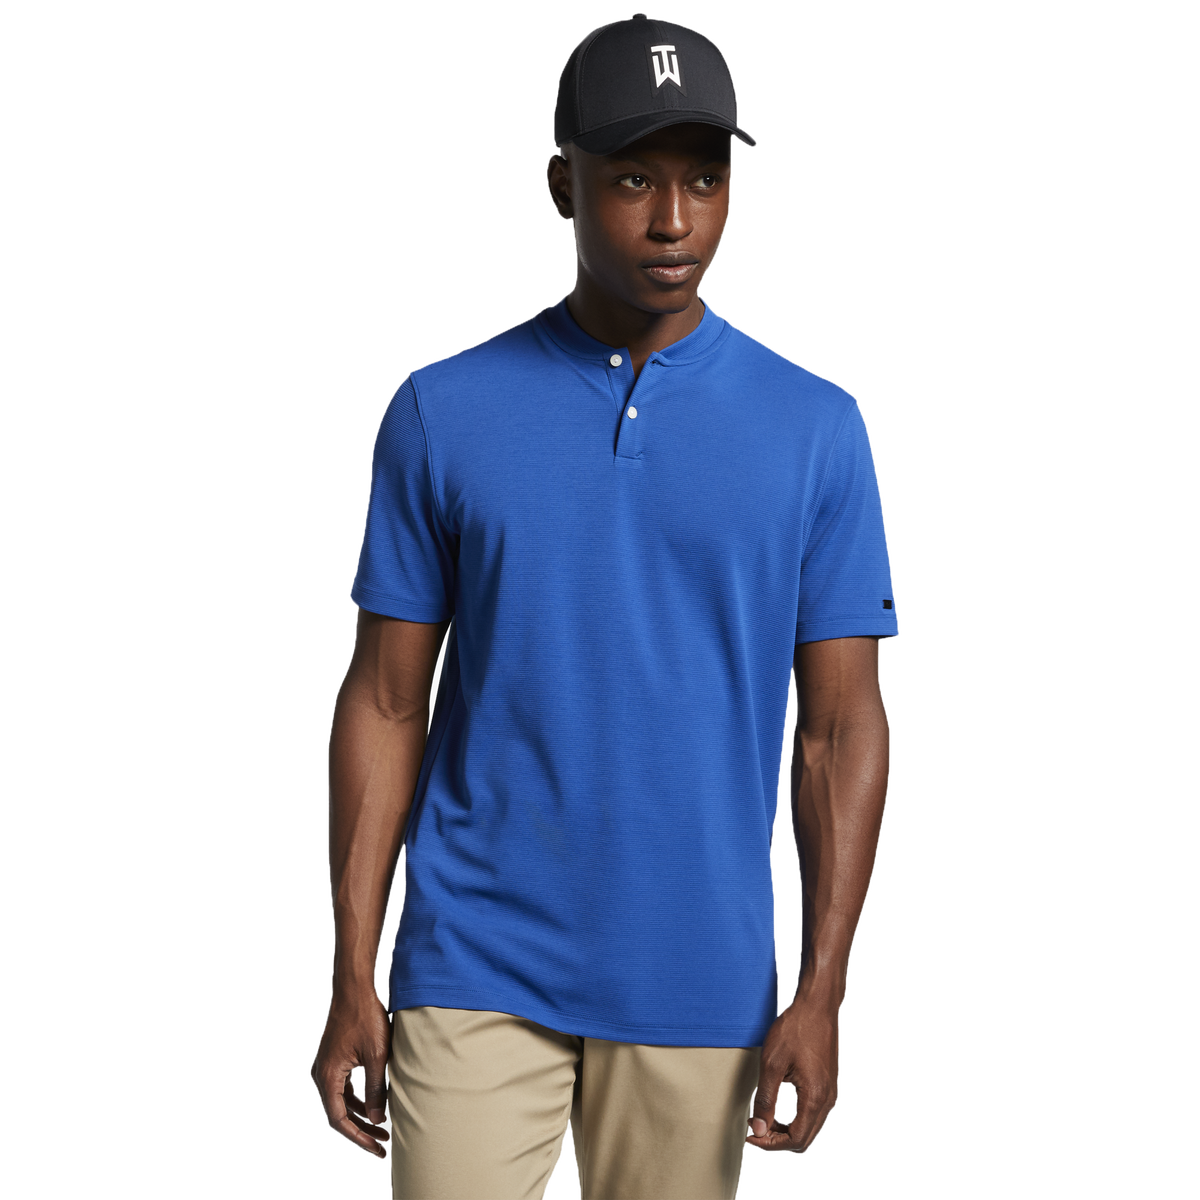 0ae2b5a6 Nike Tiger Woods Golf Shirts Edge Engineering And Consulting Limited